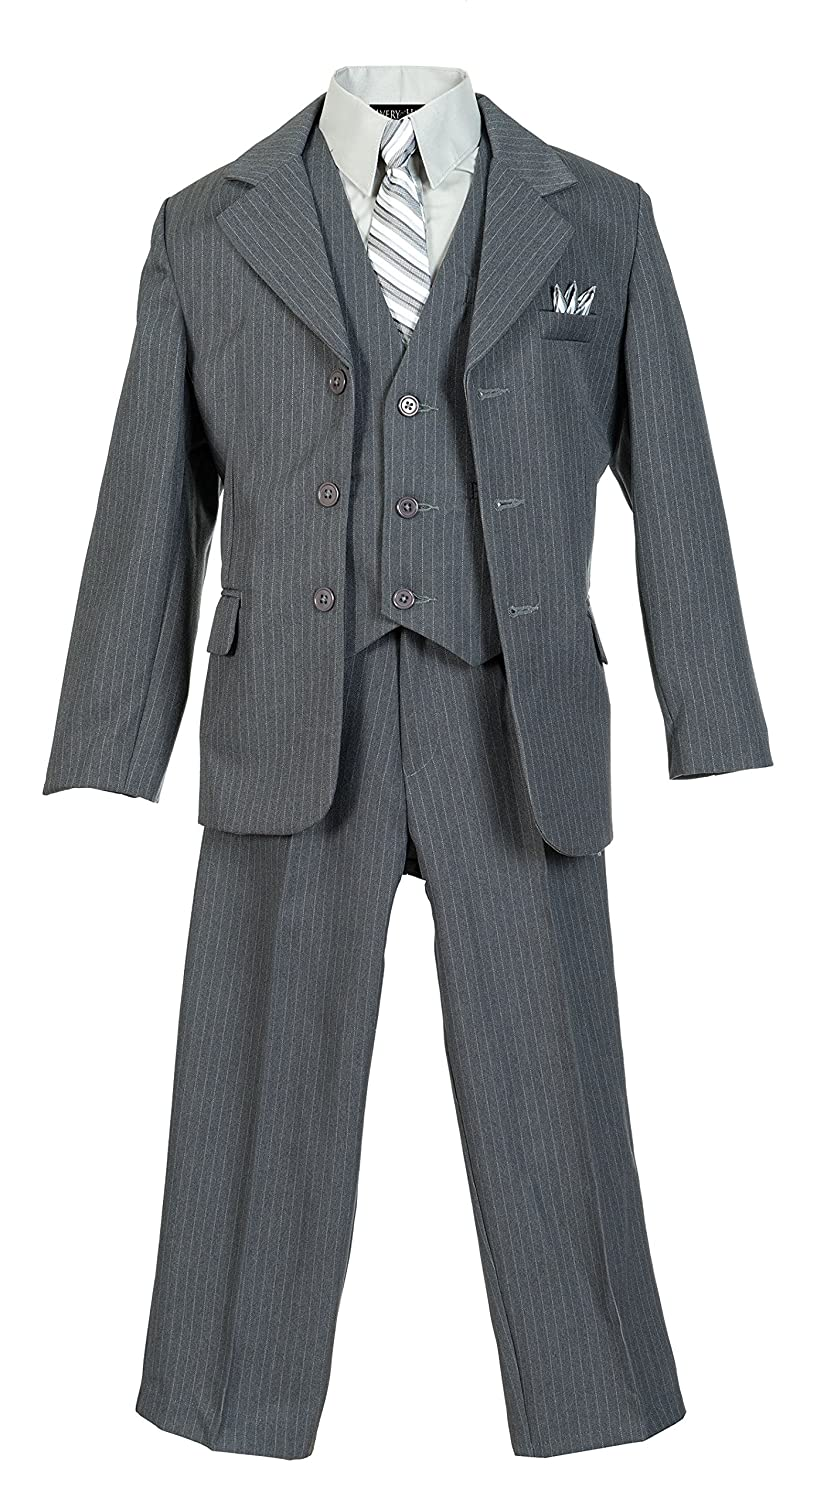 1940s Children's Clothing: Girls, Boys, Baby, Toddler Boys Pinstripe Suit Set with Matching Tie Size 2T-20 $44.99 AT vintagedancer.com